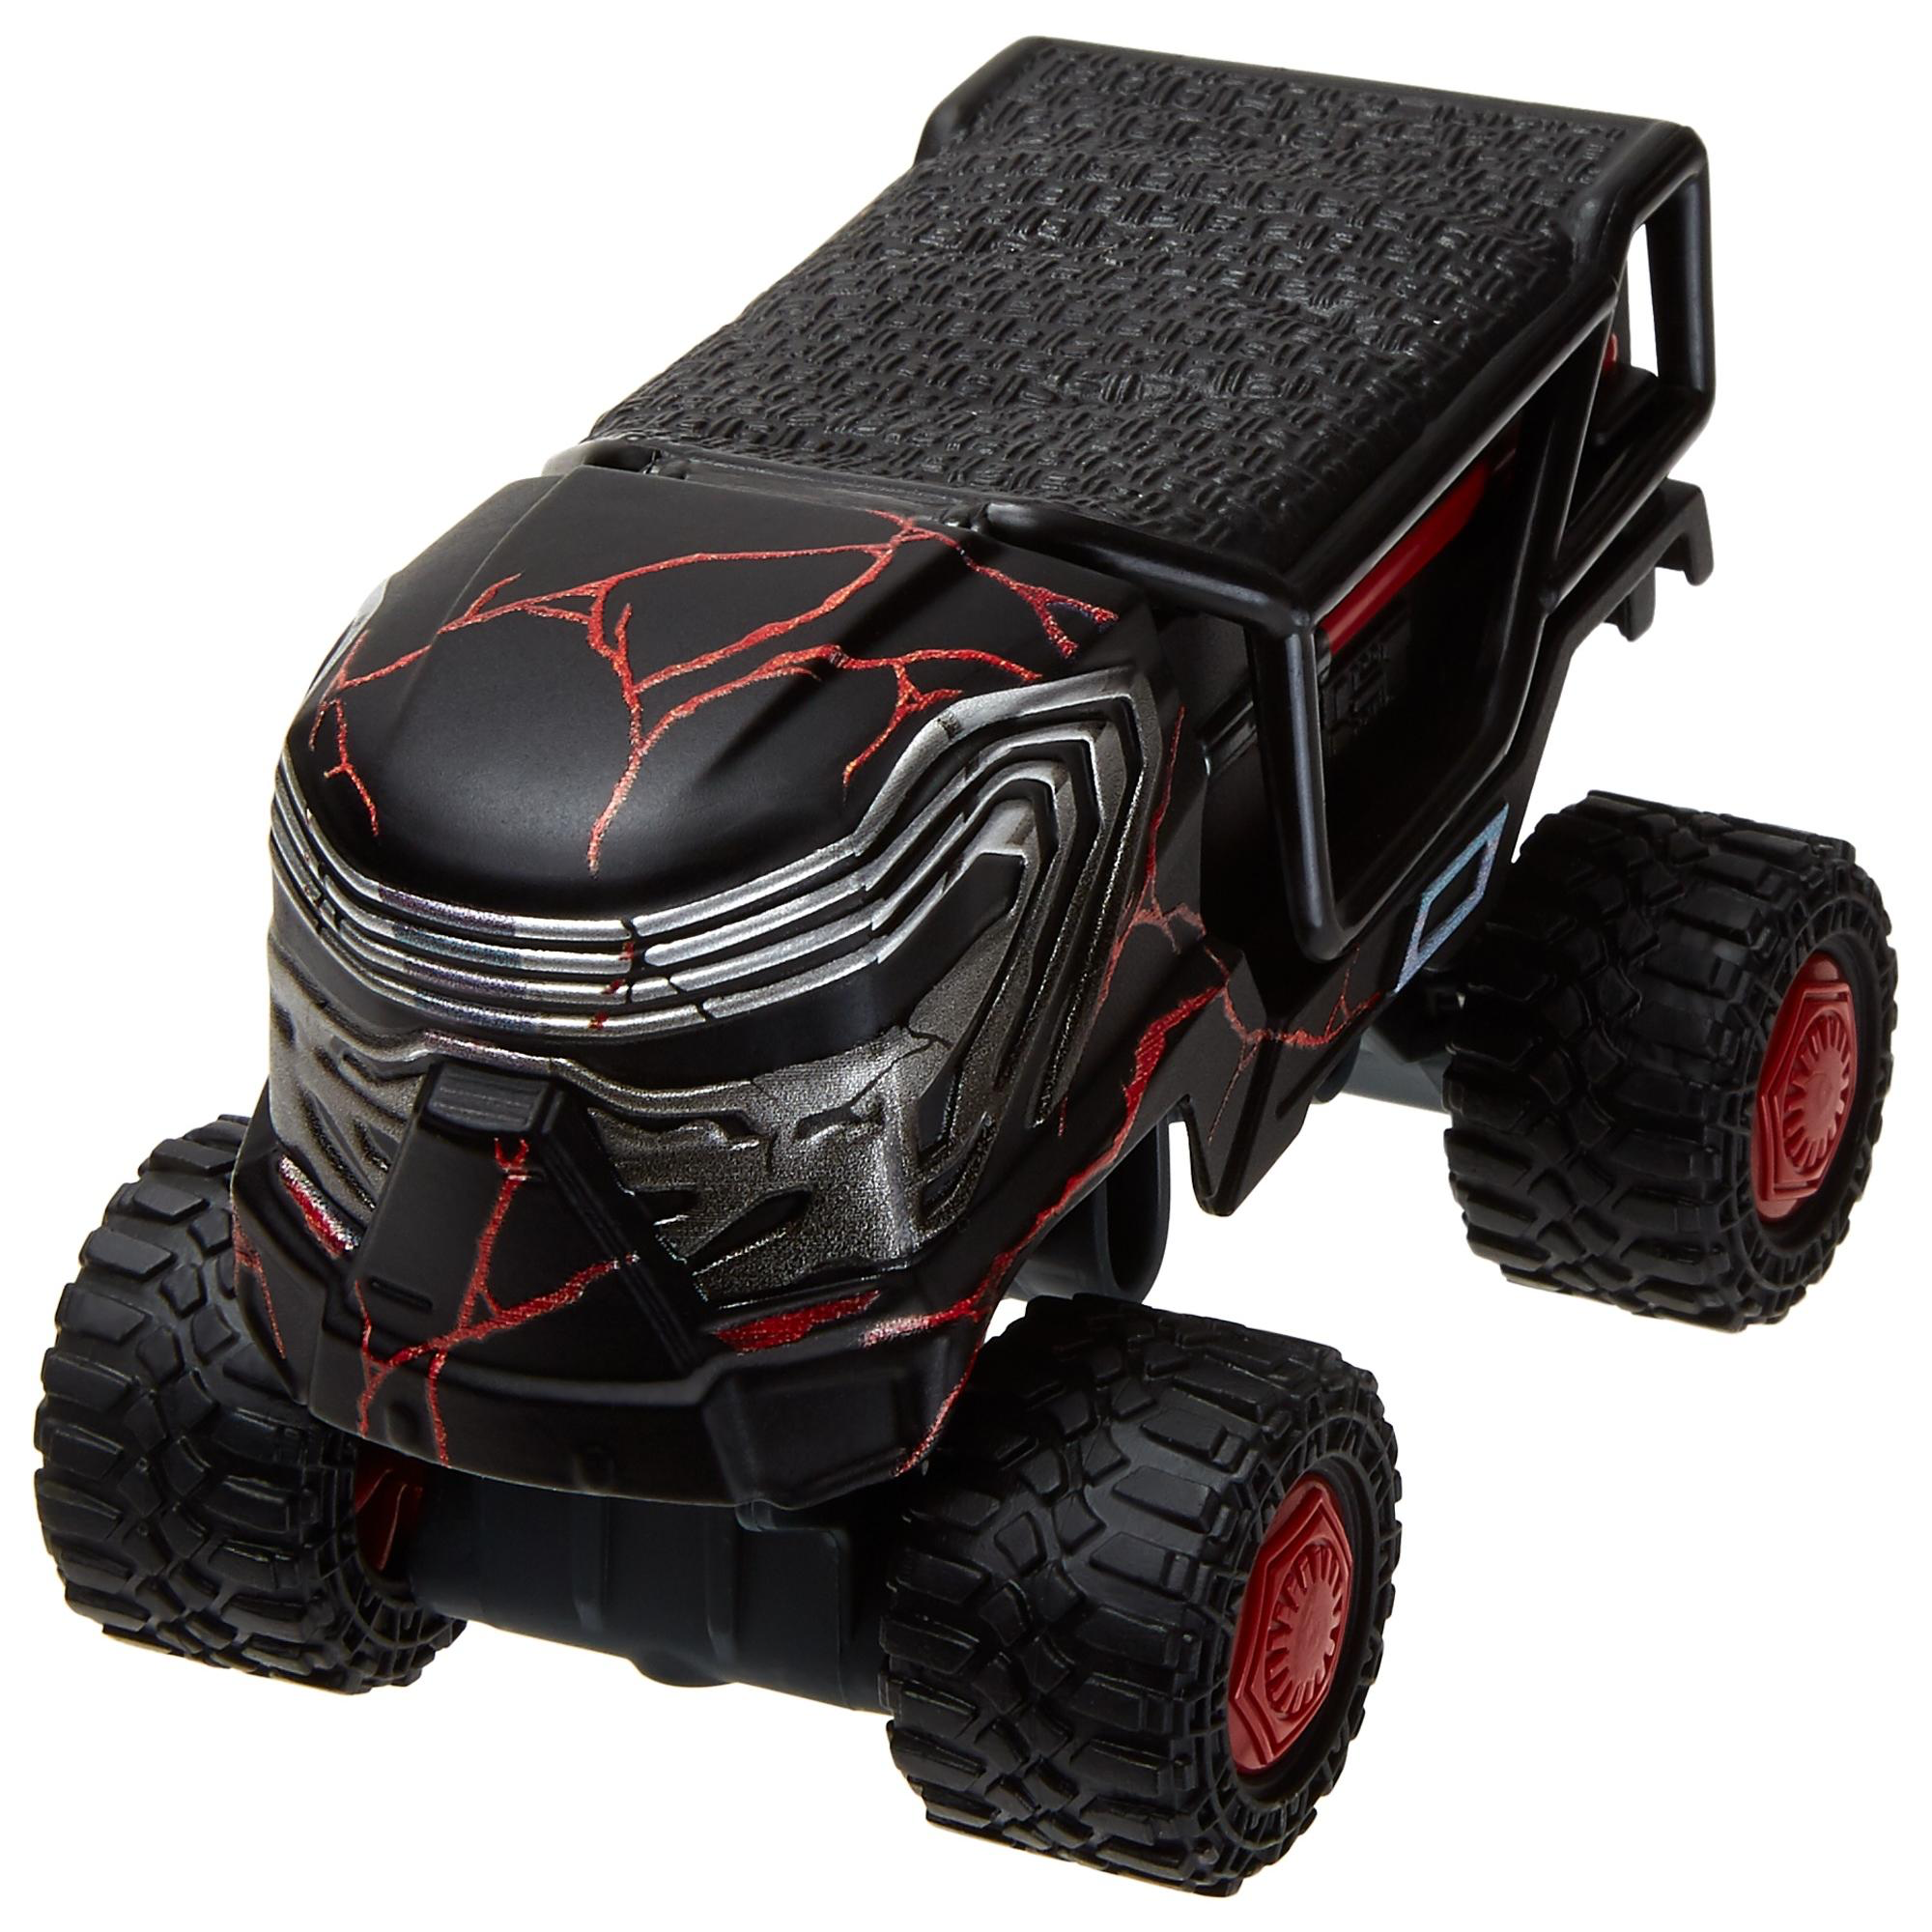 TROS HW SL Kylo Ren AT Character Car Toy 1